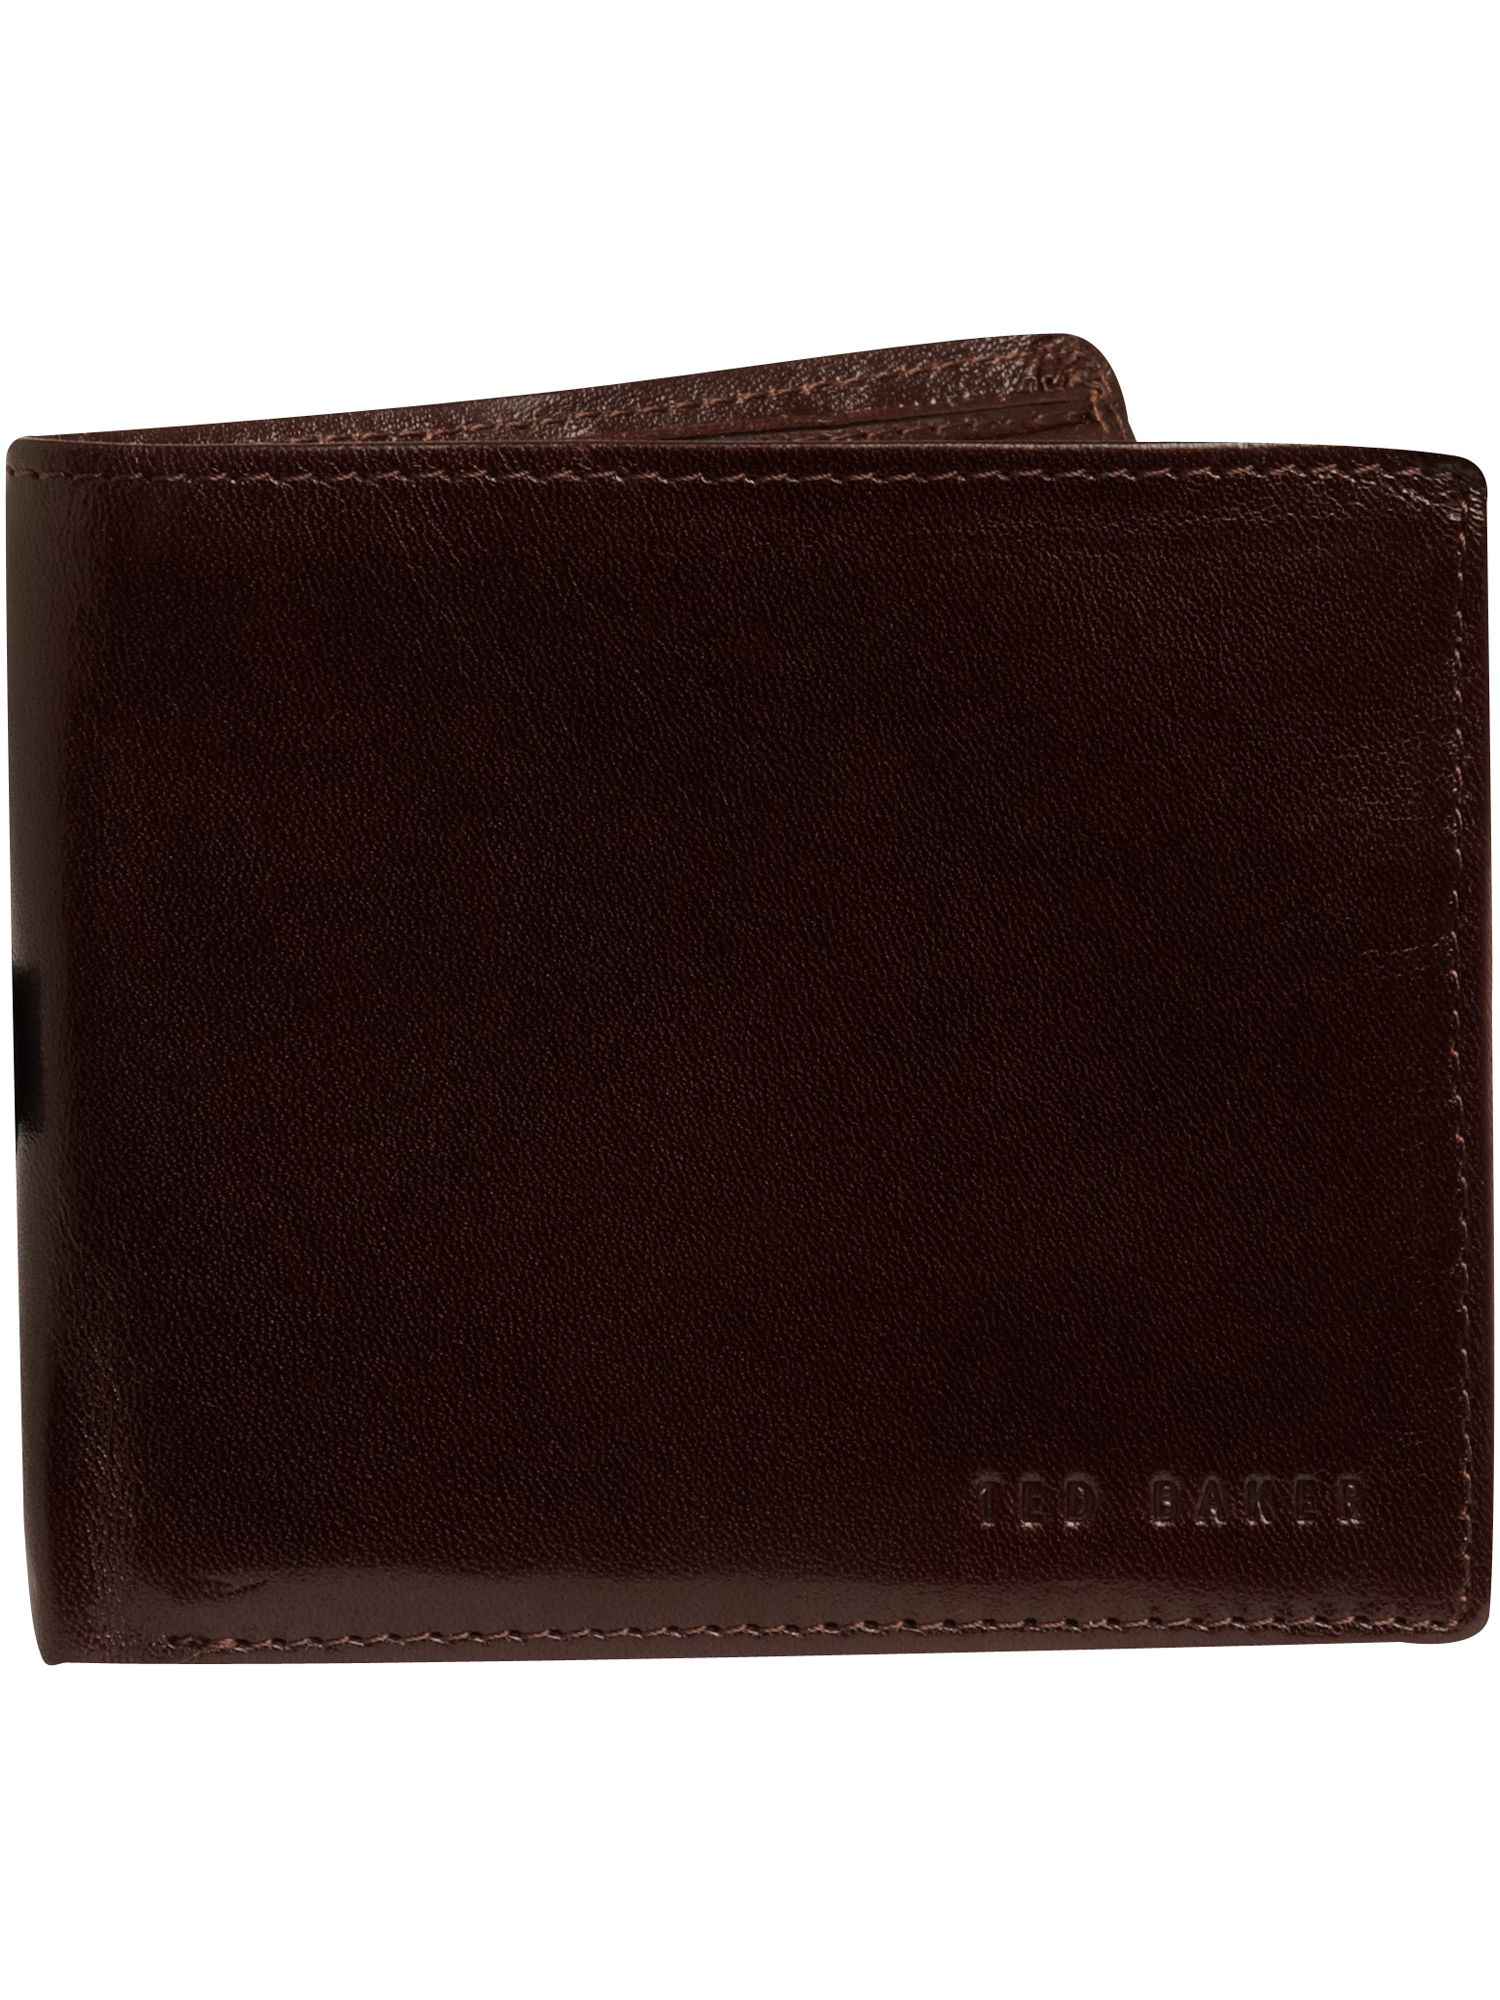 Ted Baker Block wallet with credit card holder product image